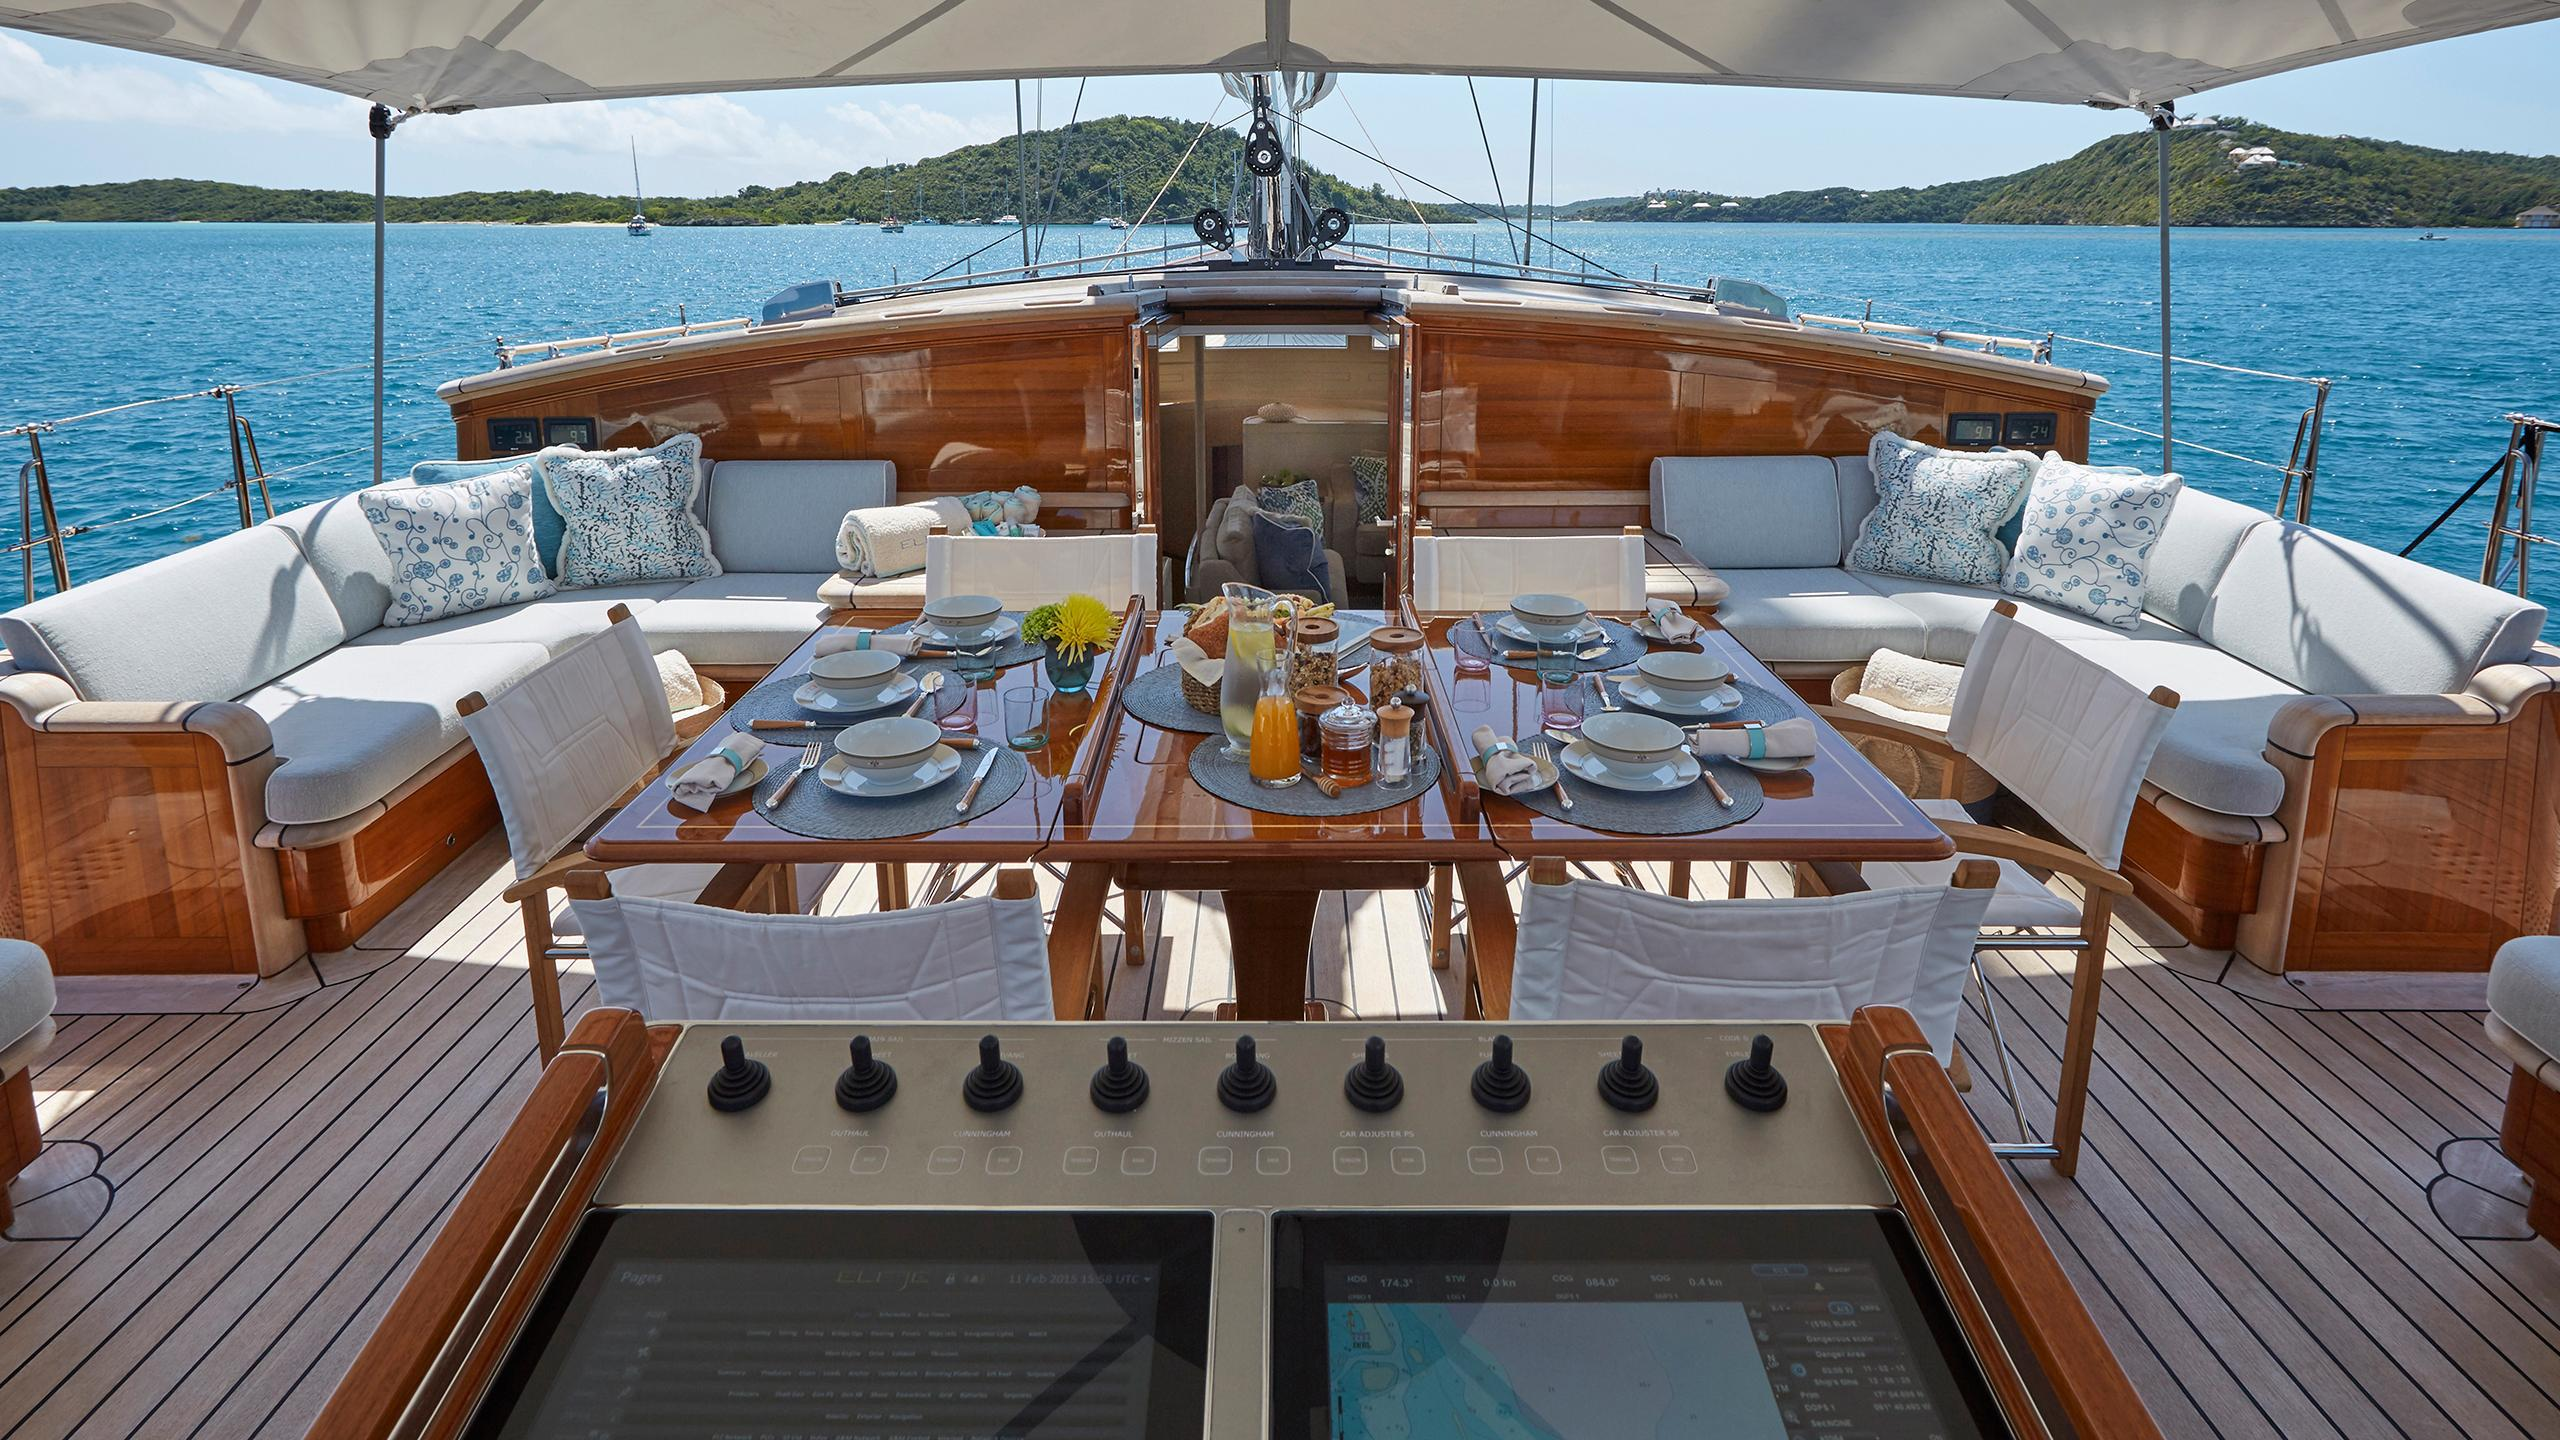 elfje-sailing-yacht-royal-huisman-2014-52m-covered-dining-deck